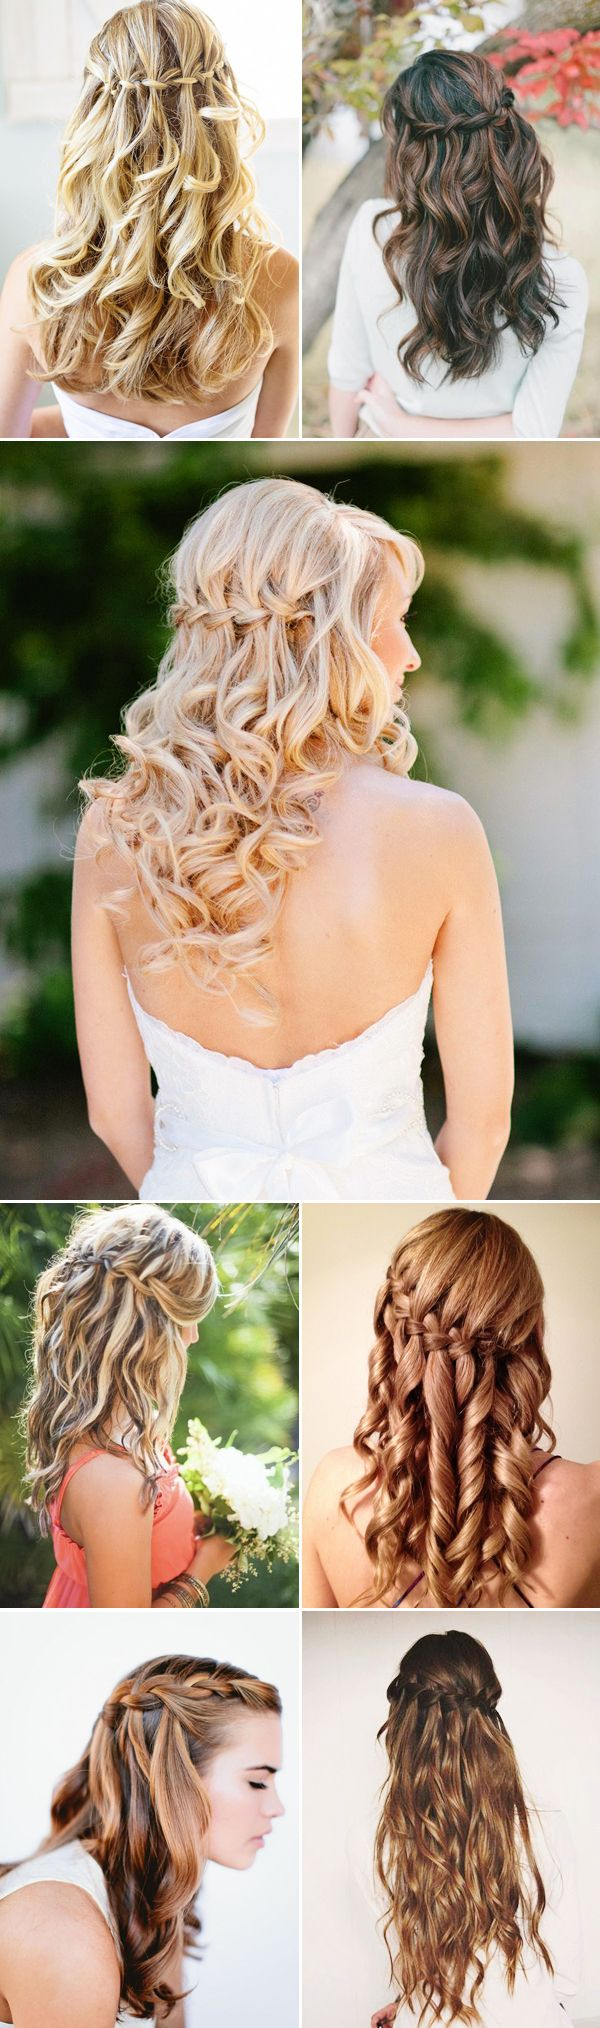 Having the perfect hairstyle is a must for every bride on her special day.  However, choosing a hairstyle requires plenty of thought with so many options available.  If you are not a fan of updo's and prefer to show your long hair in a feminine, romantic way, you will love our collection of long bridal …